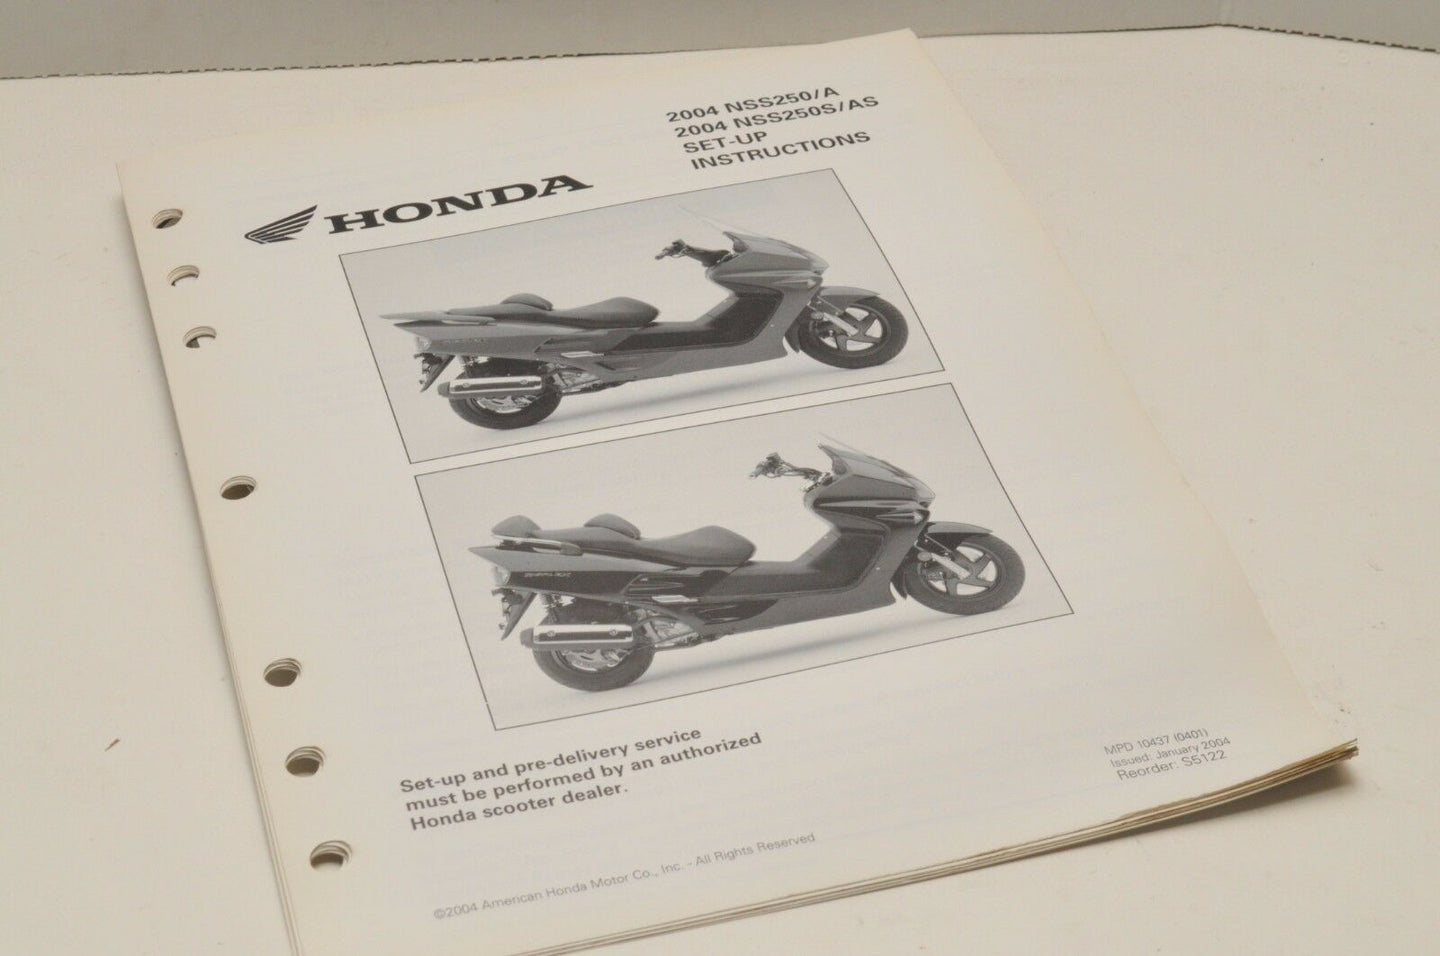 2004 NSS250 A S AS Genuine OEM Honda Factory SETUP INSTRUCTIONS PDI MANUAL S5122